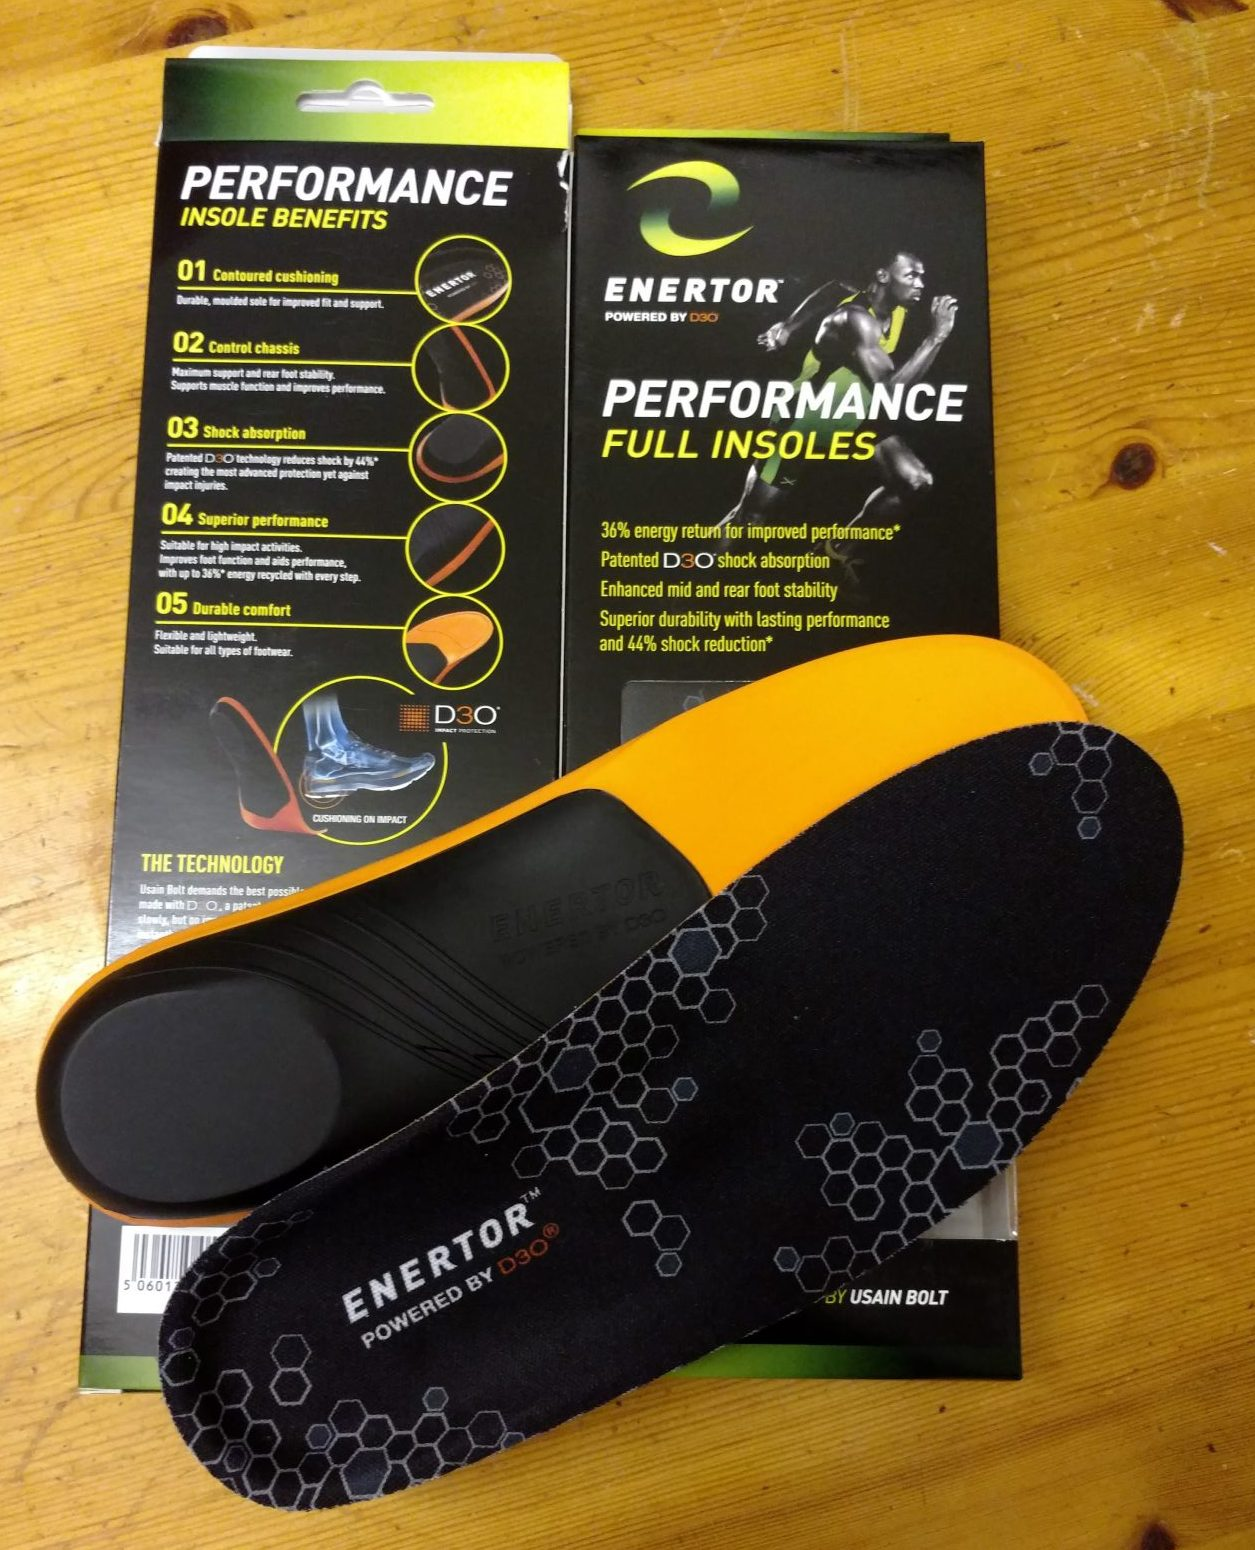 Enertor Performance Insoles